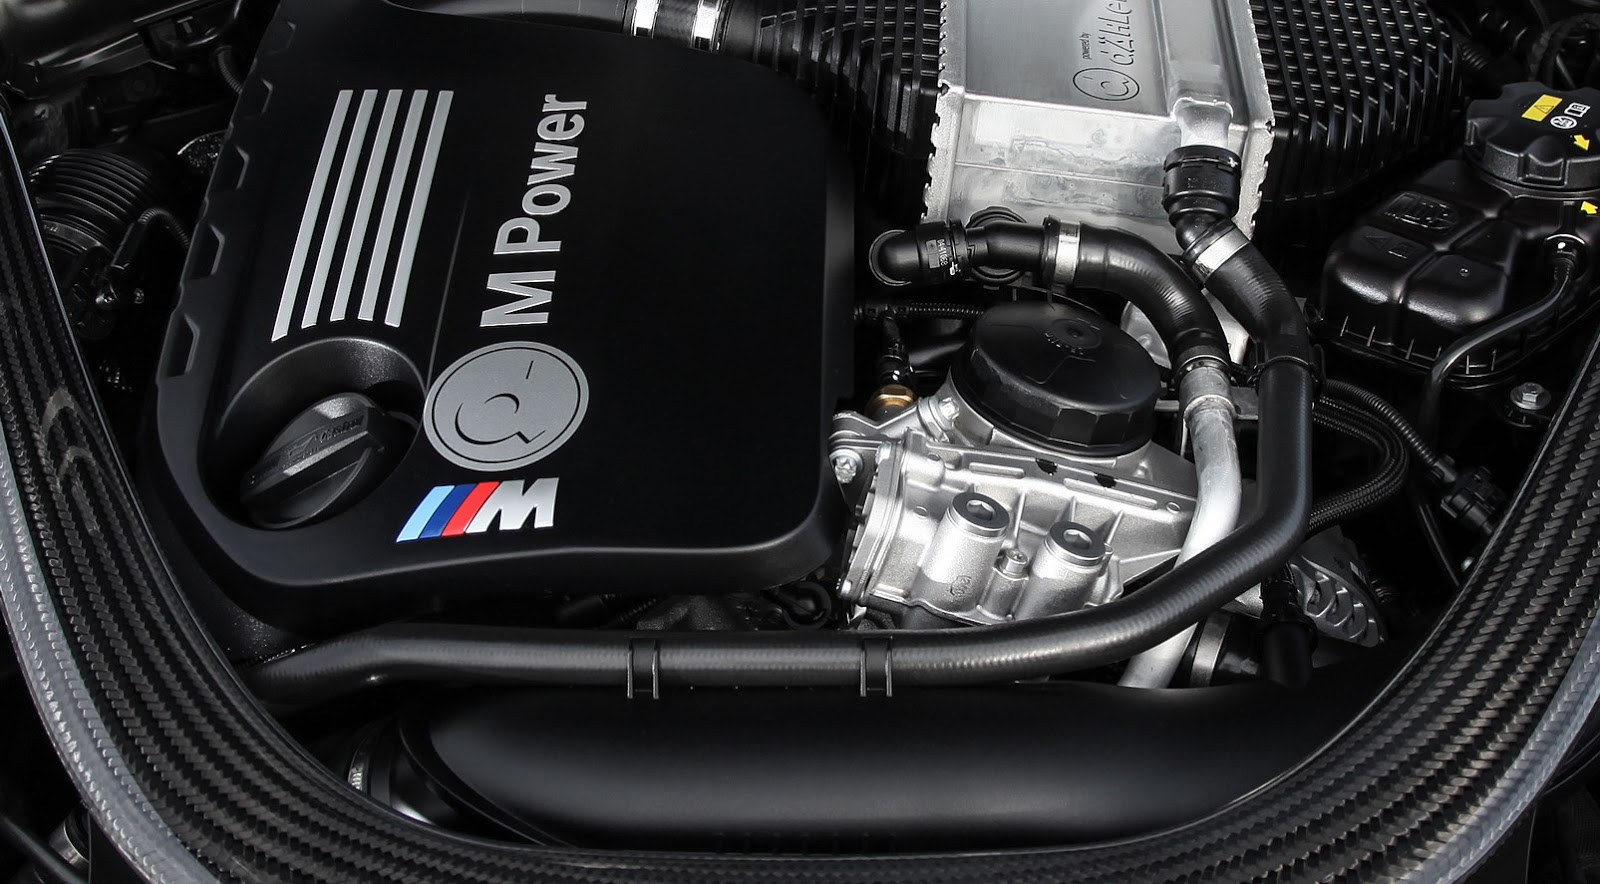 D Hler Drops Bmw M4 S S55 Into M2 Coupe Tunes It To 532hp